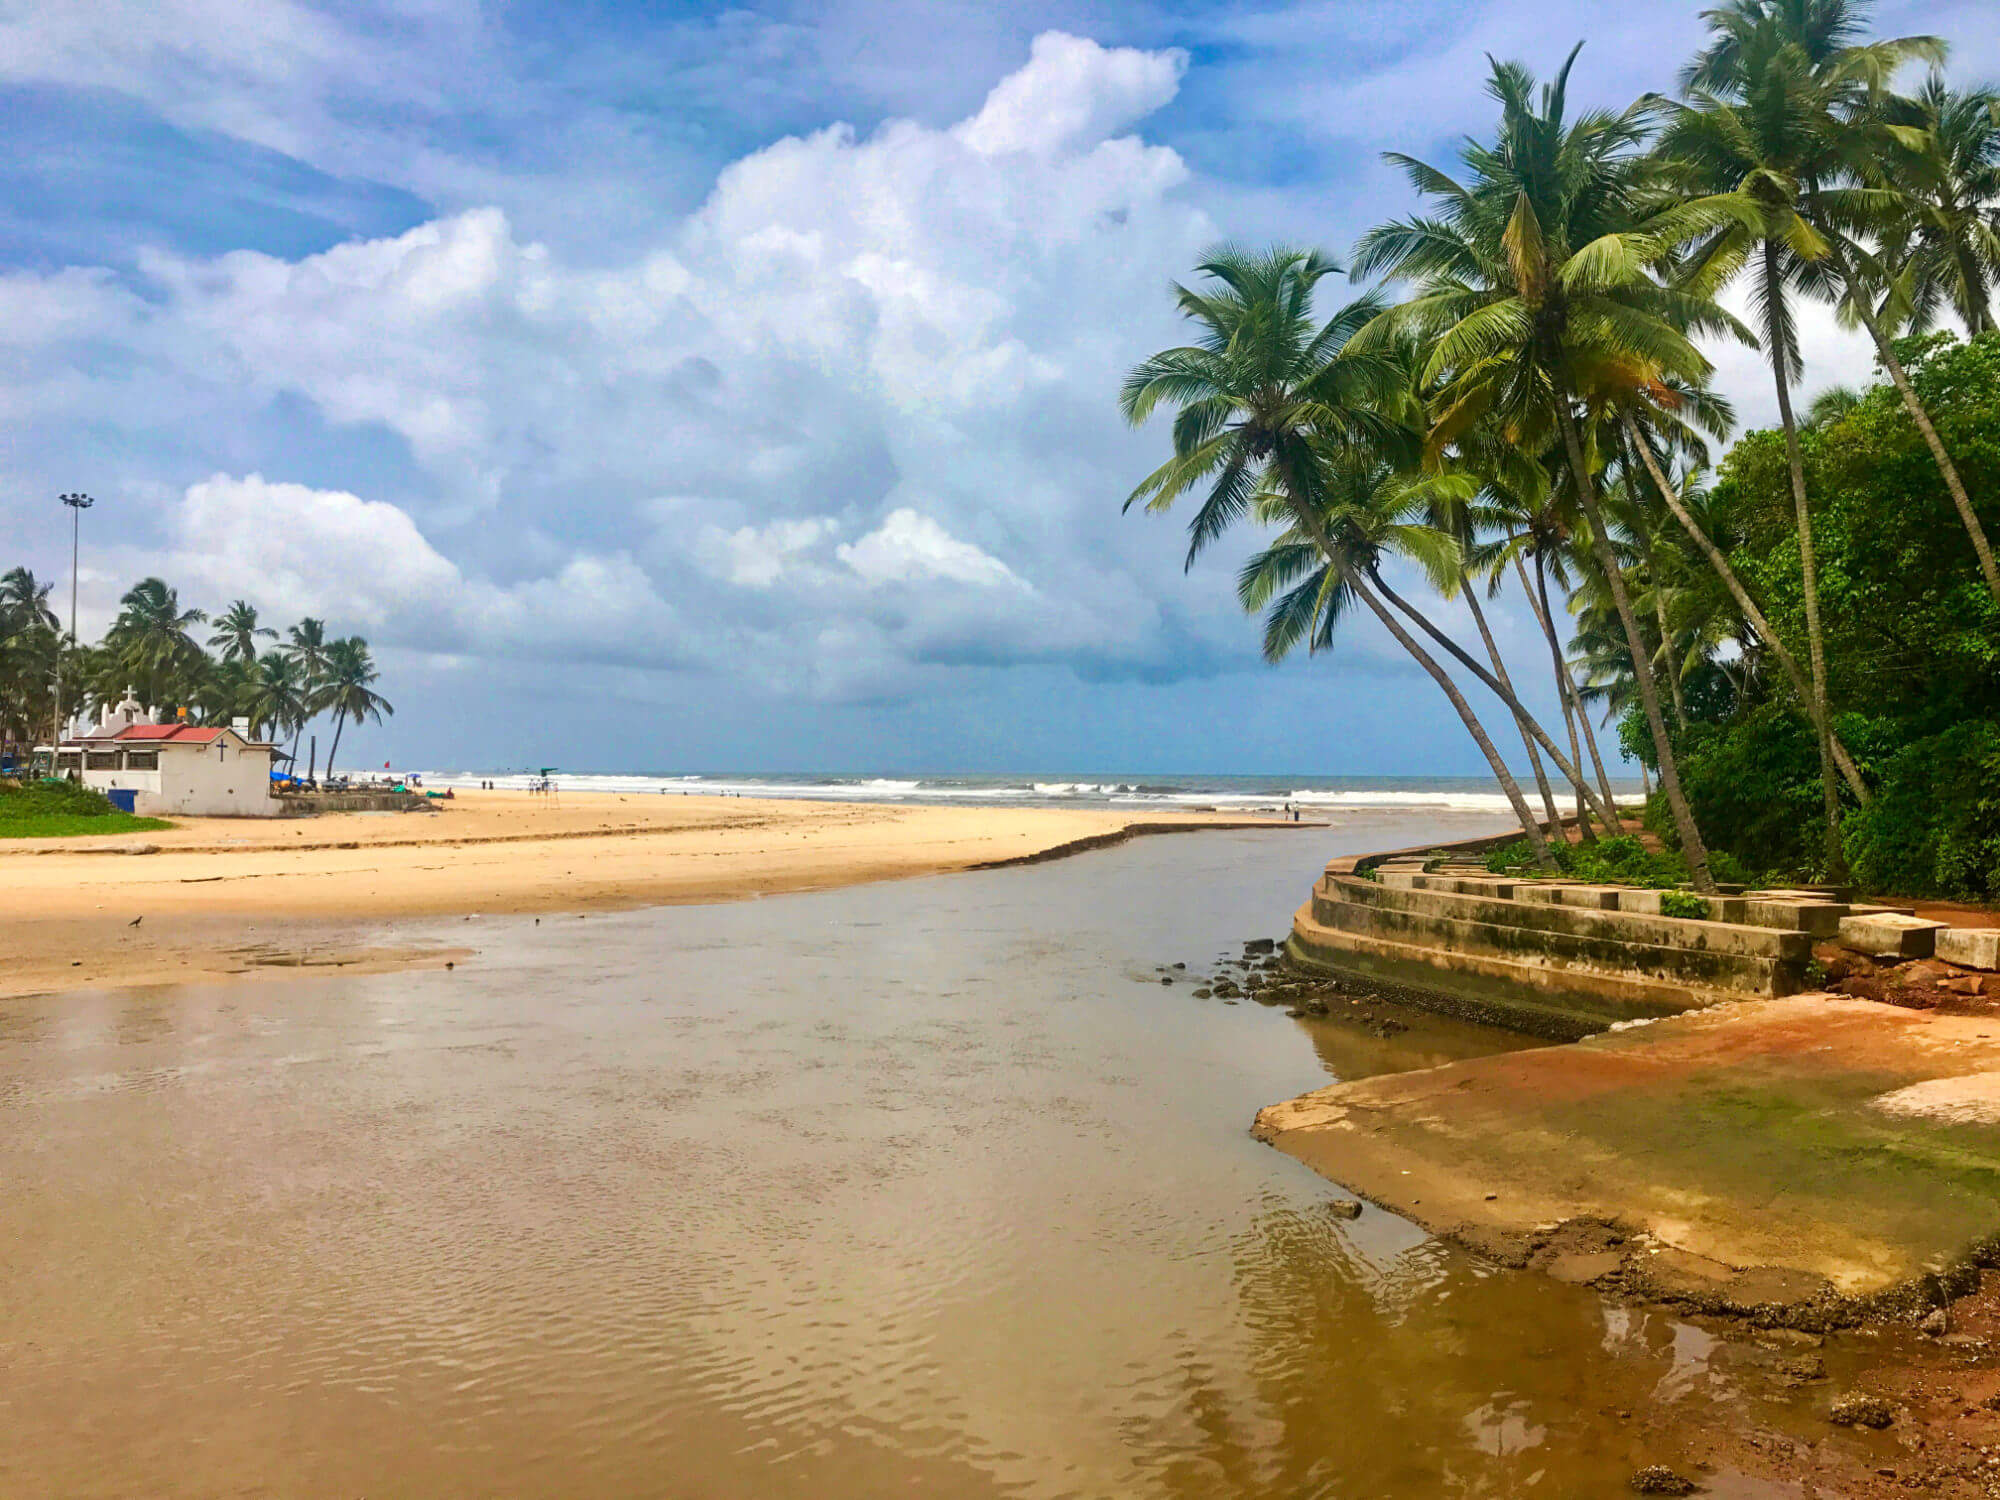 Visiting Goa in the Monsoons – Yes or No?